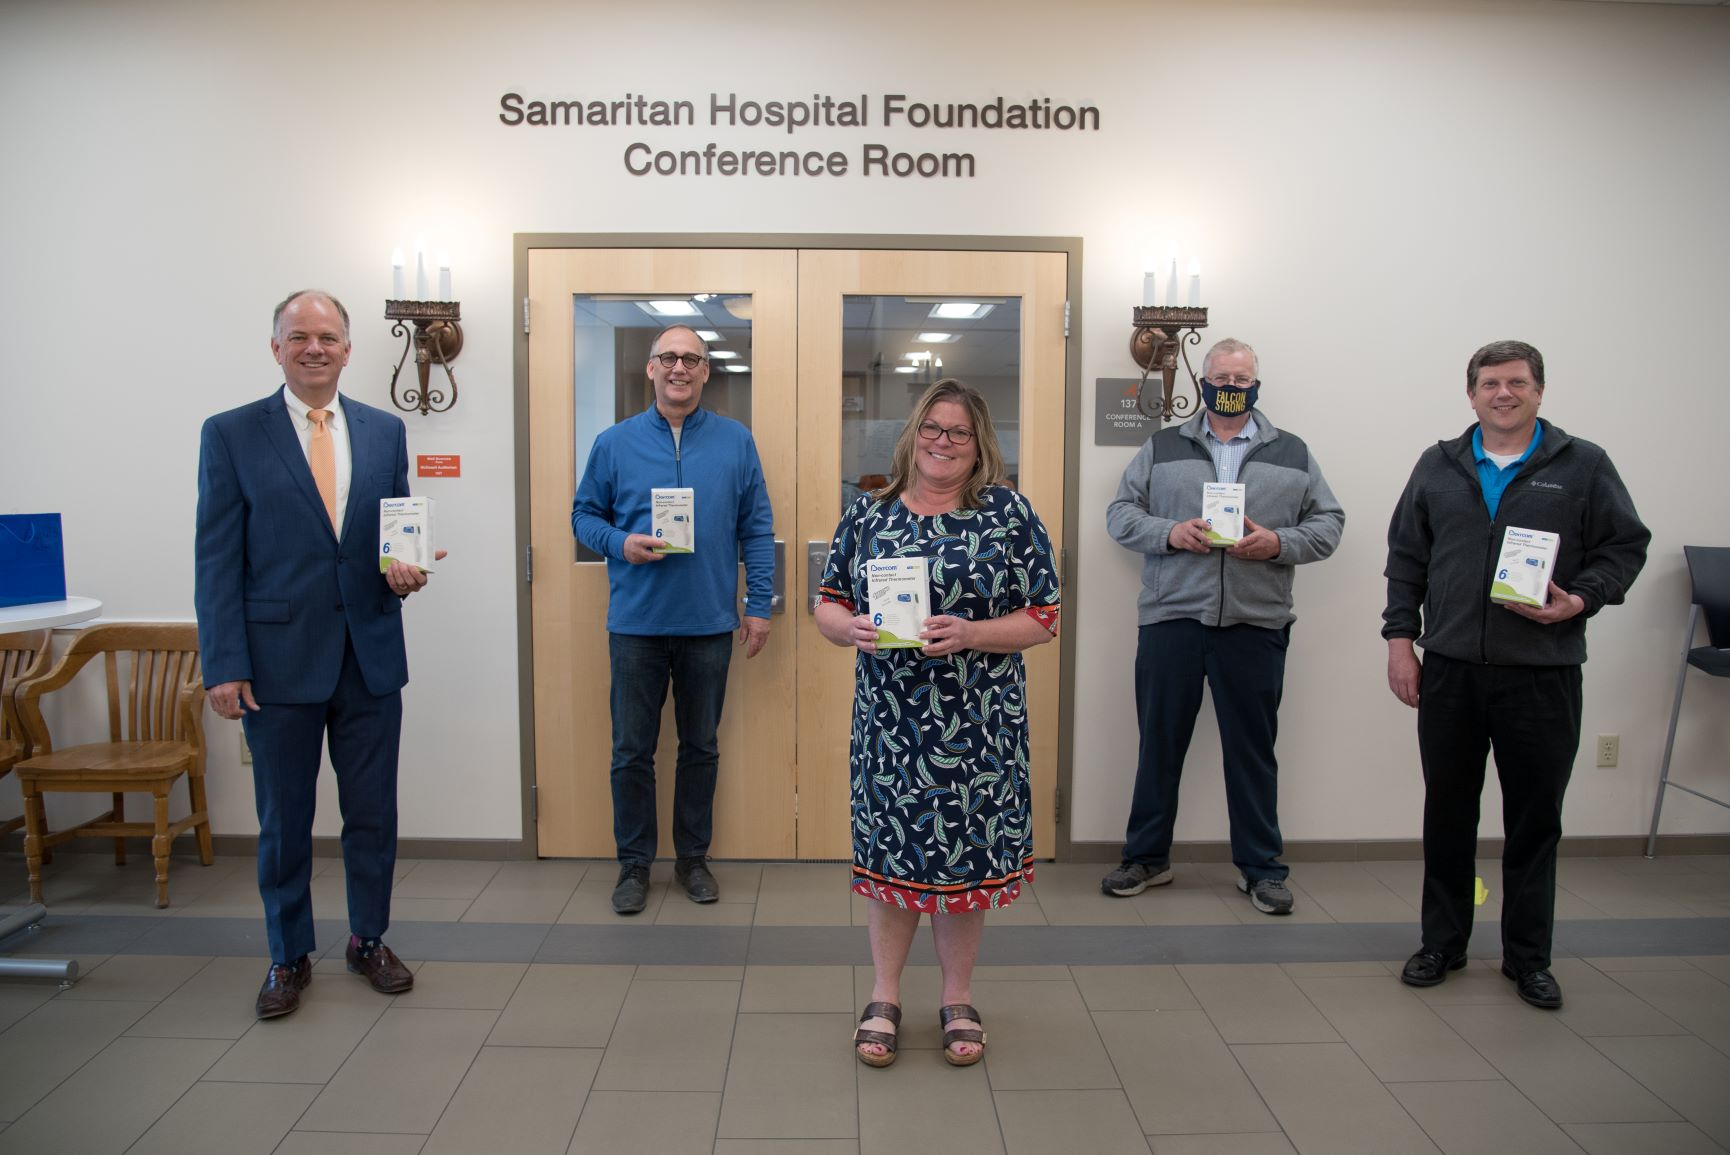 Samaritan Hospital Foundation Equips Every School Entrance in Ashland County With Non-Contact Thermometers